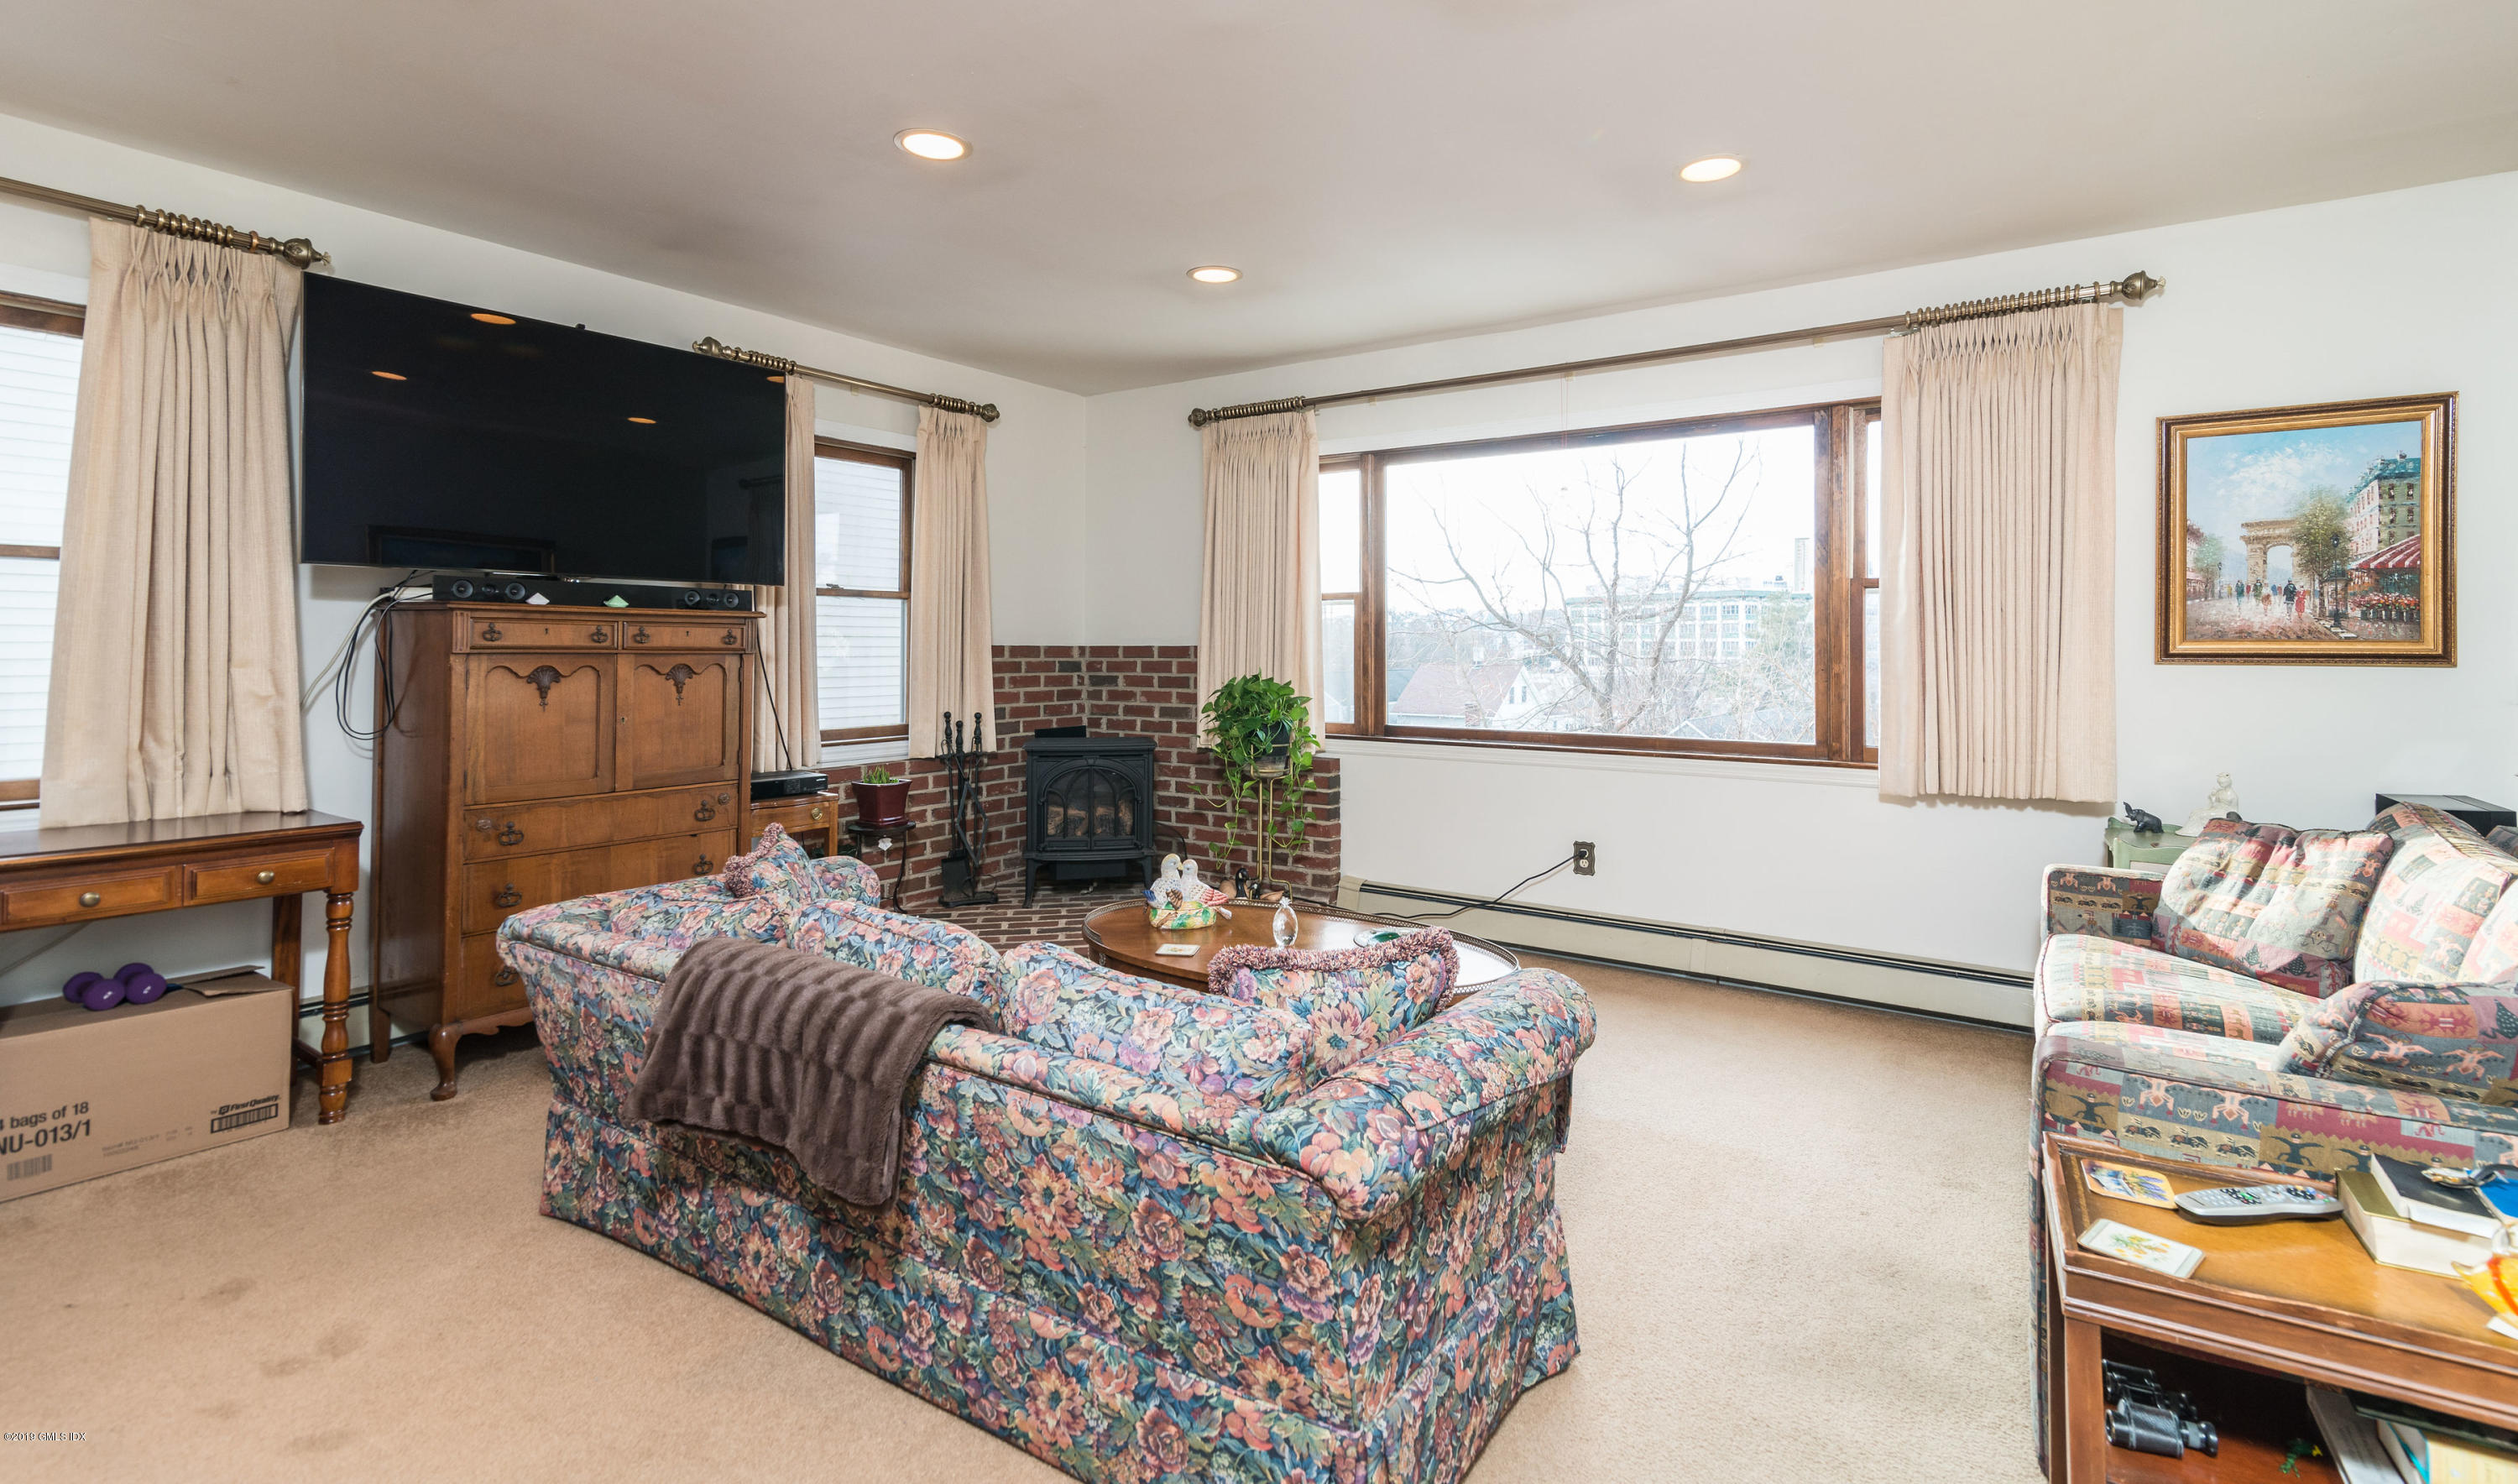 76 Henry Street,Greenwich,Connecticut 06830,2 Bedrooms Bedrooms,1 BathroomBathrooms,Single family,Henry,105448